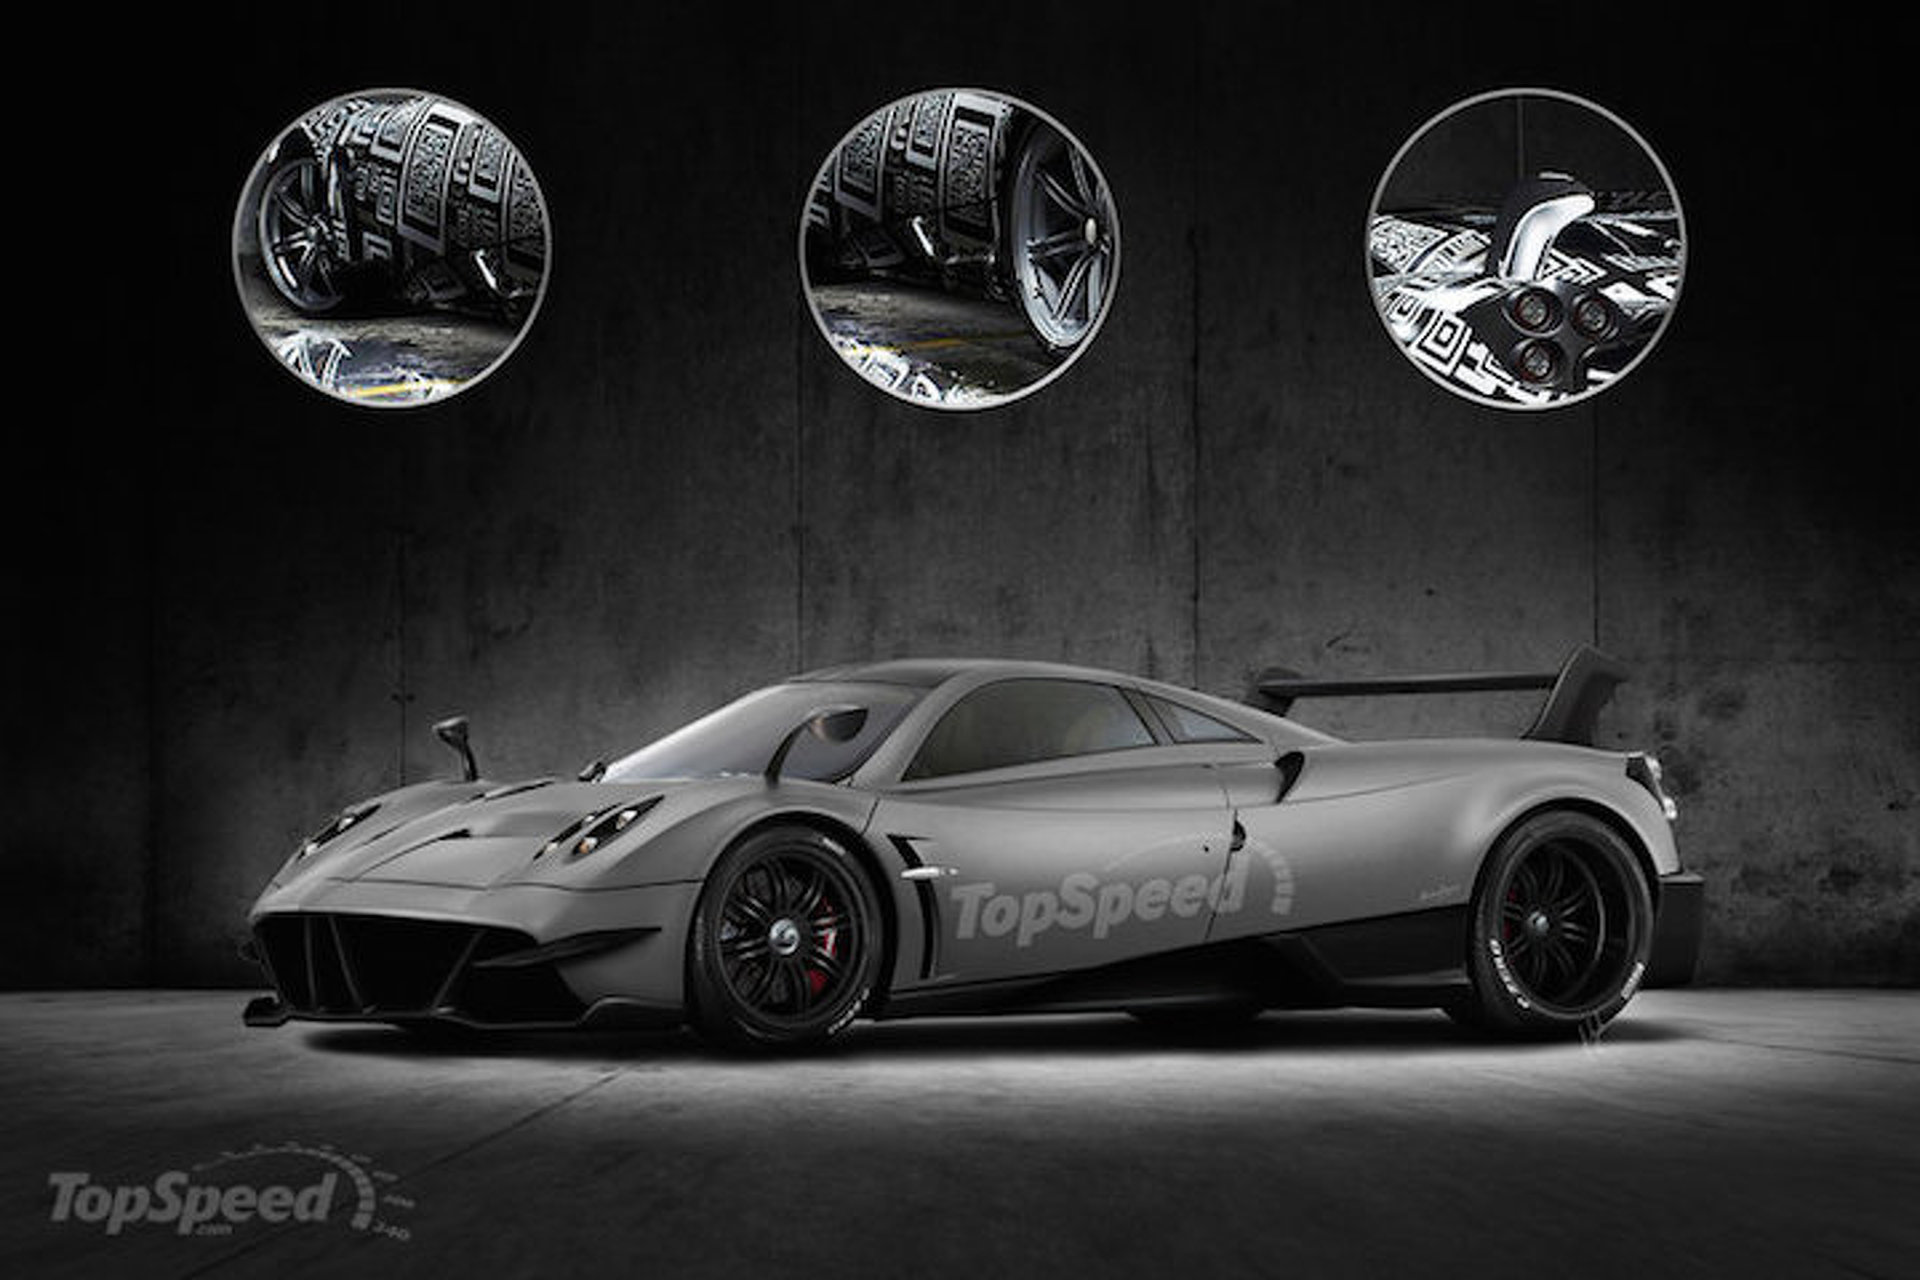 2017 Pagani Huayra BC Rendering Has Us Yearning For More